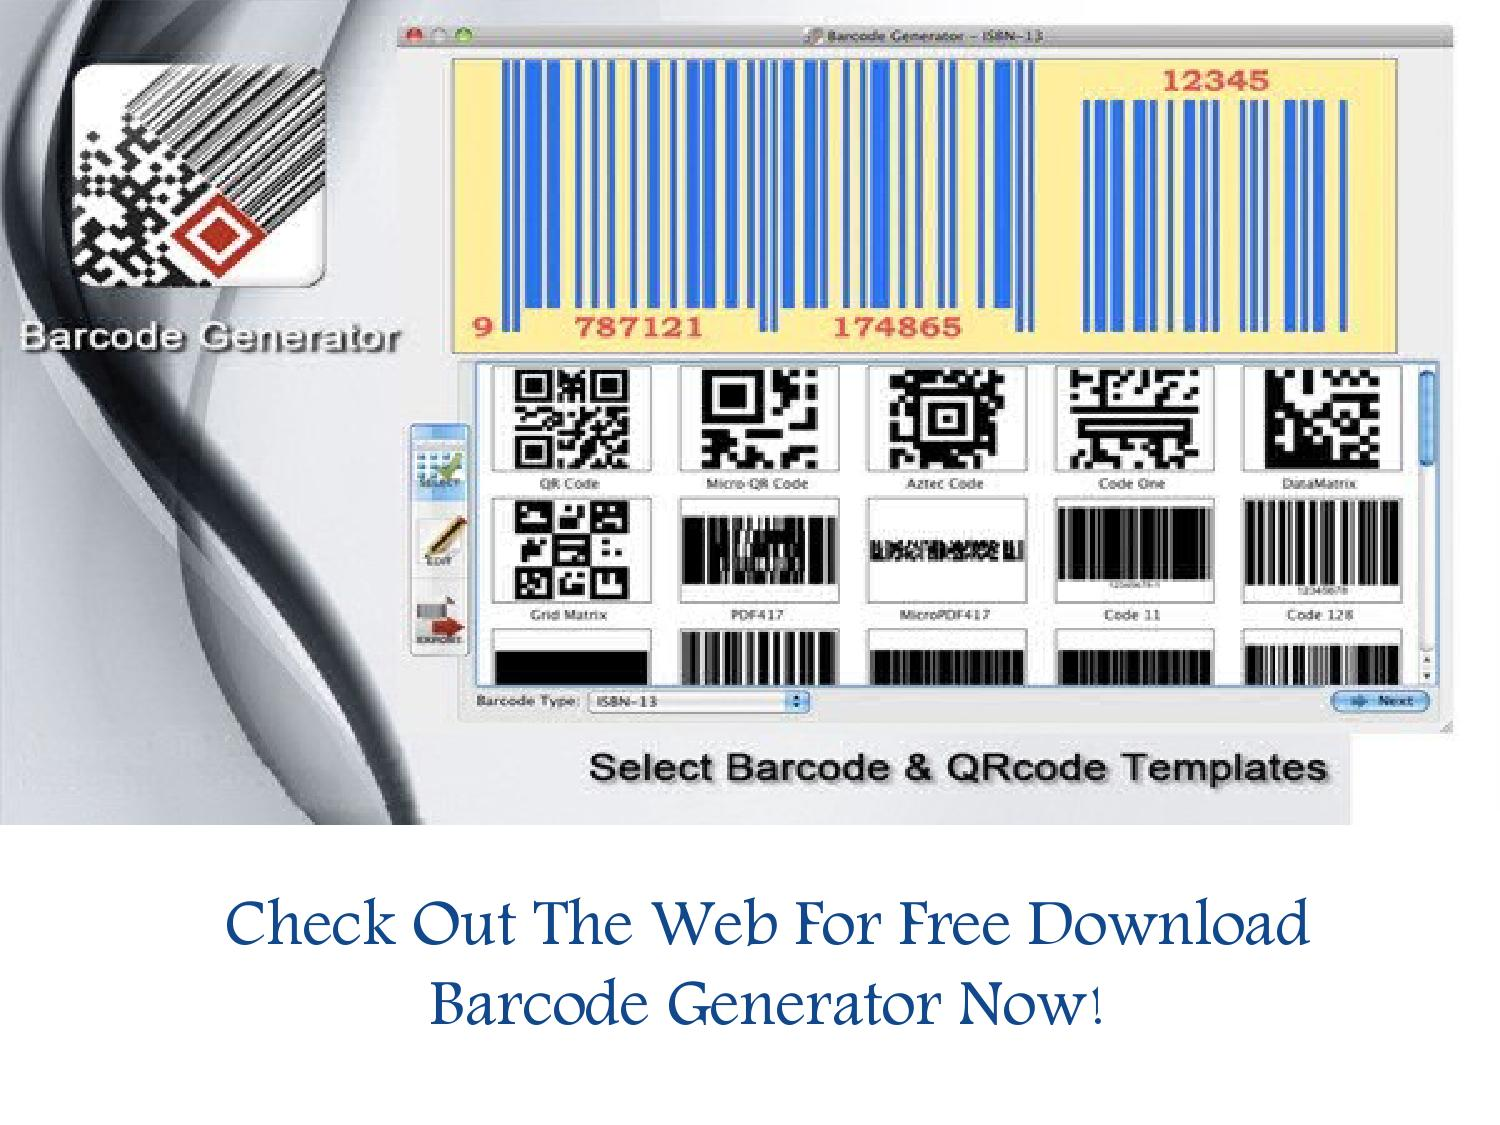 Check Out The Web For Free Download Barcode Generator Now